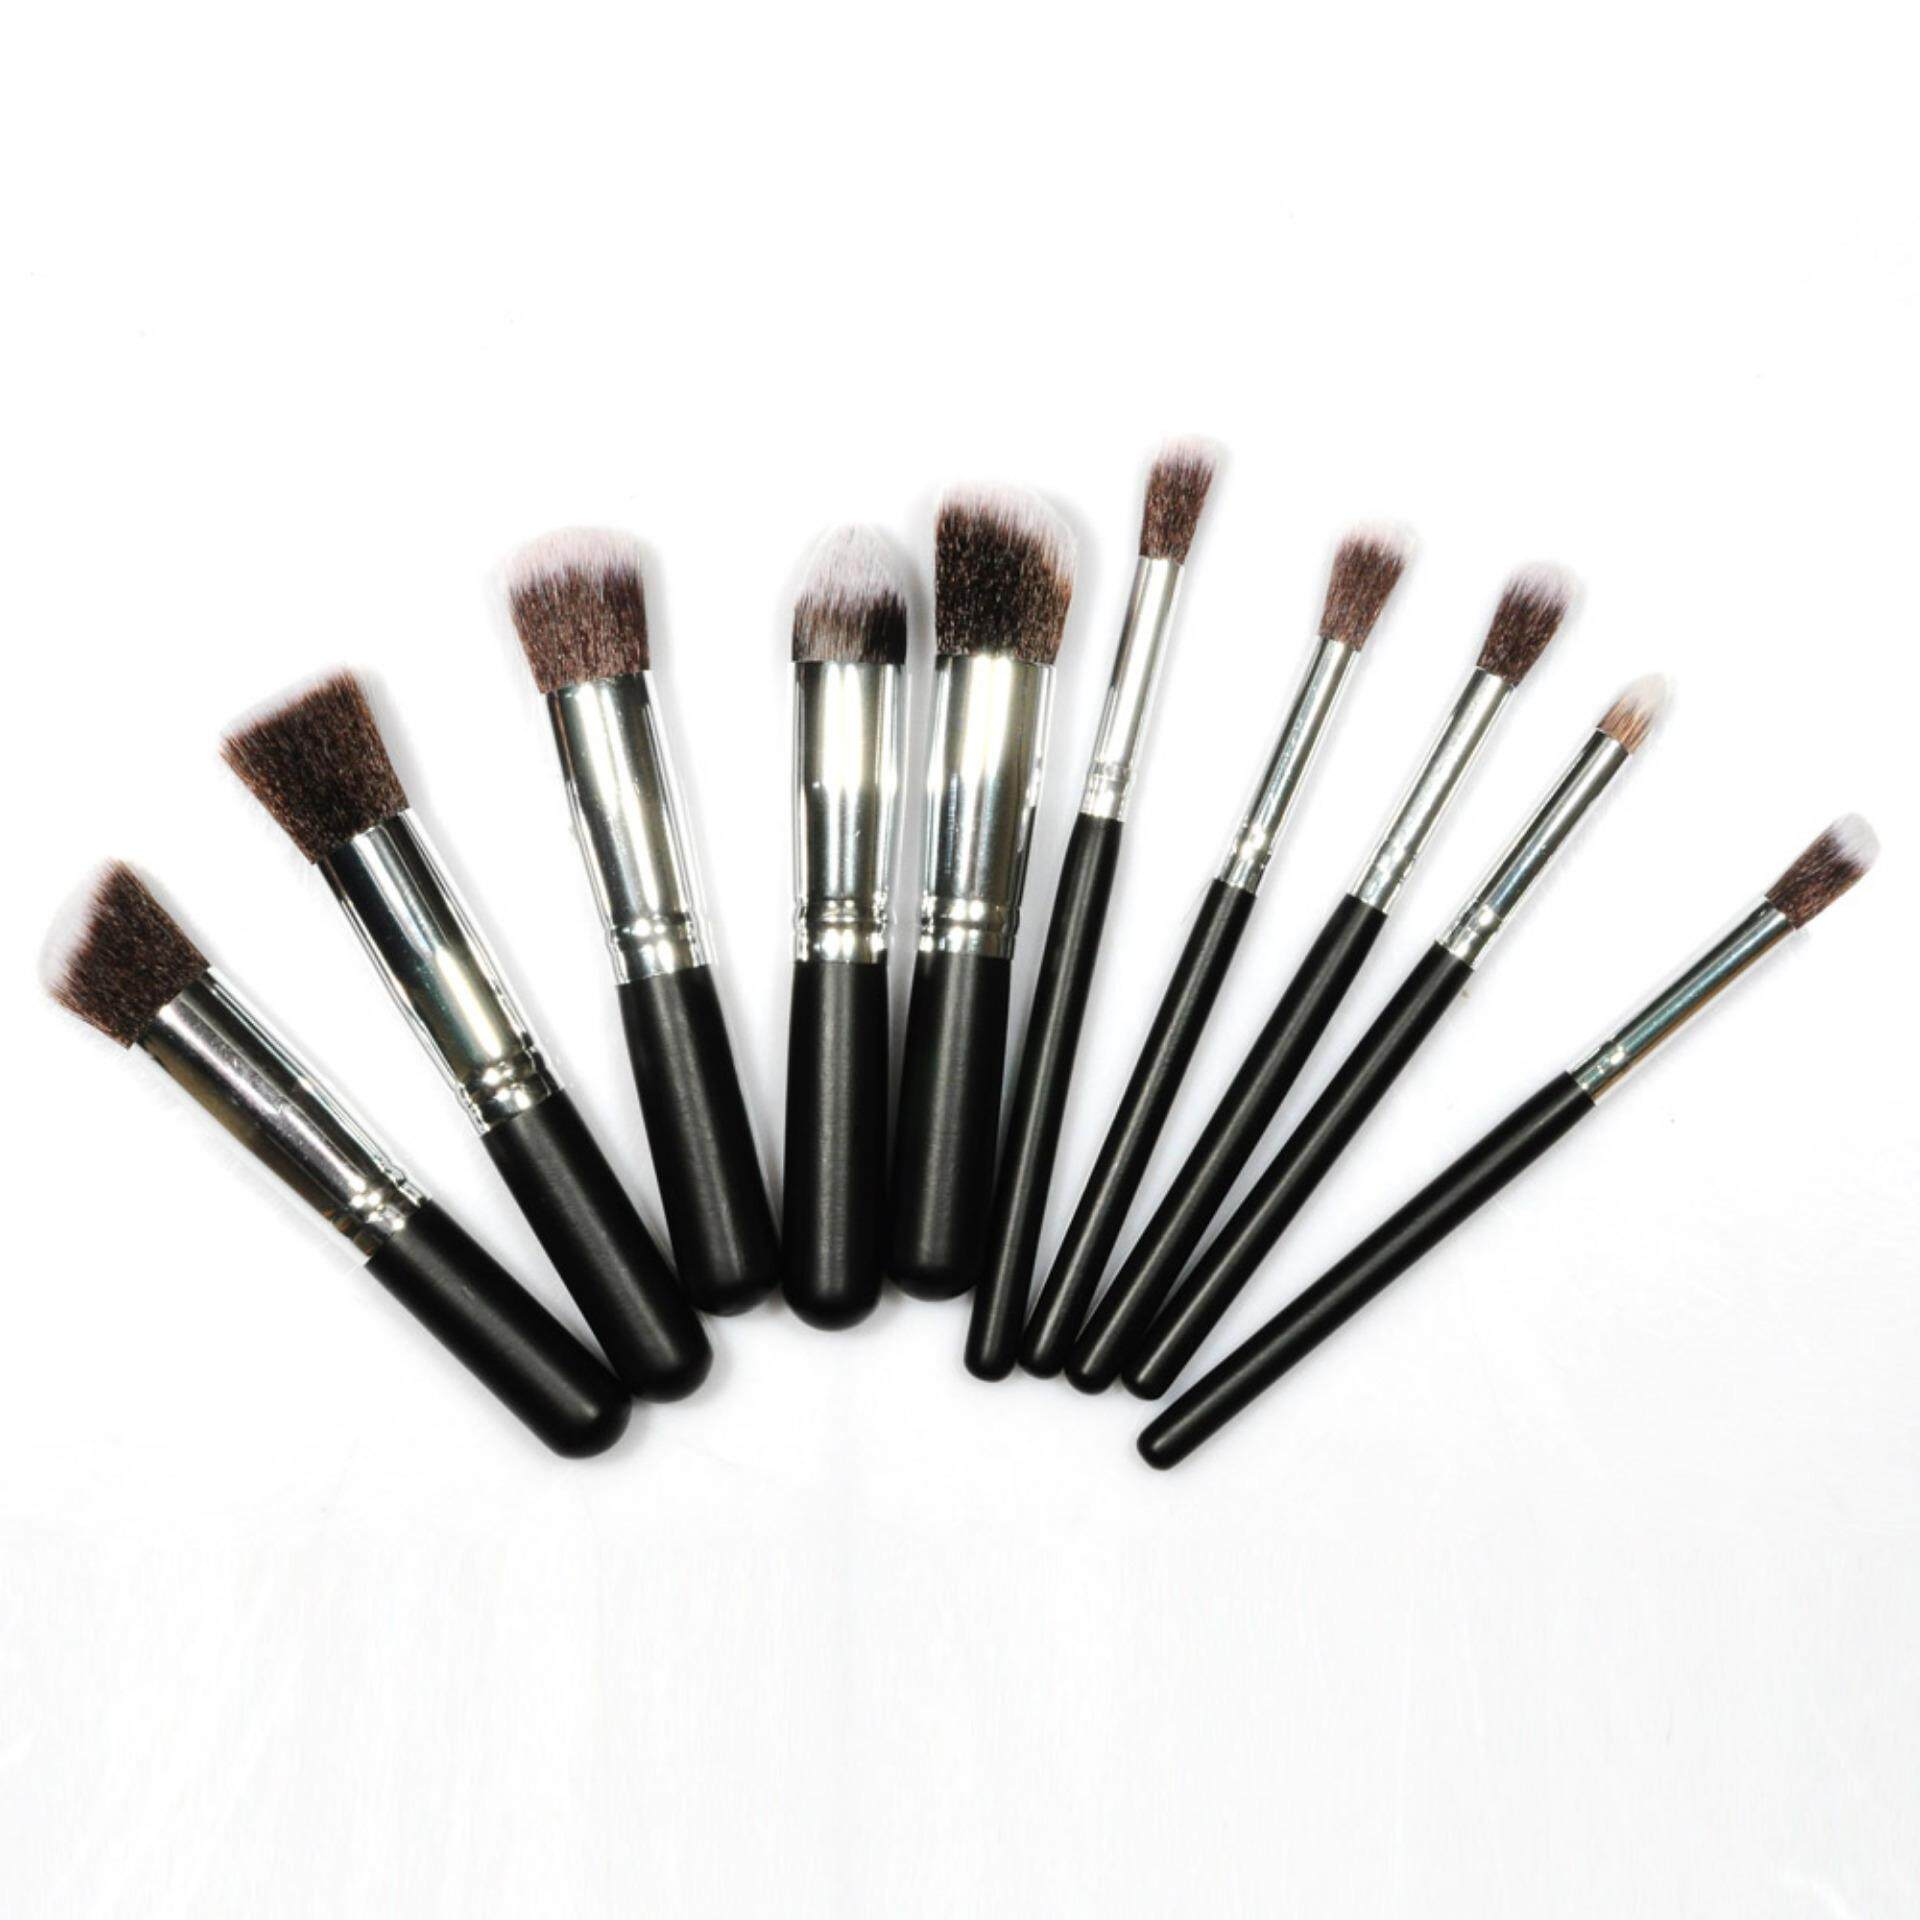 BM Lycheebeauty 10 pcs Professional Makeup Brush Set Beauty Foundation Powder Eyeshadow Cosmetics Make Up Brushes